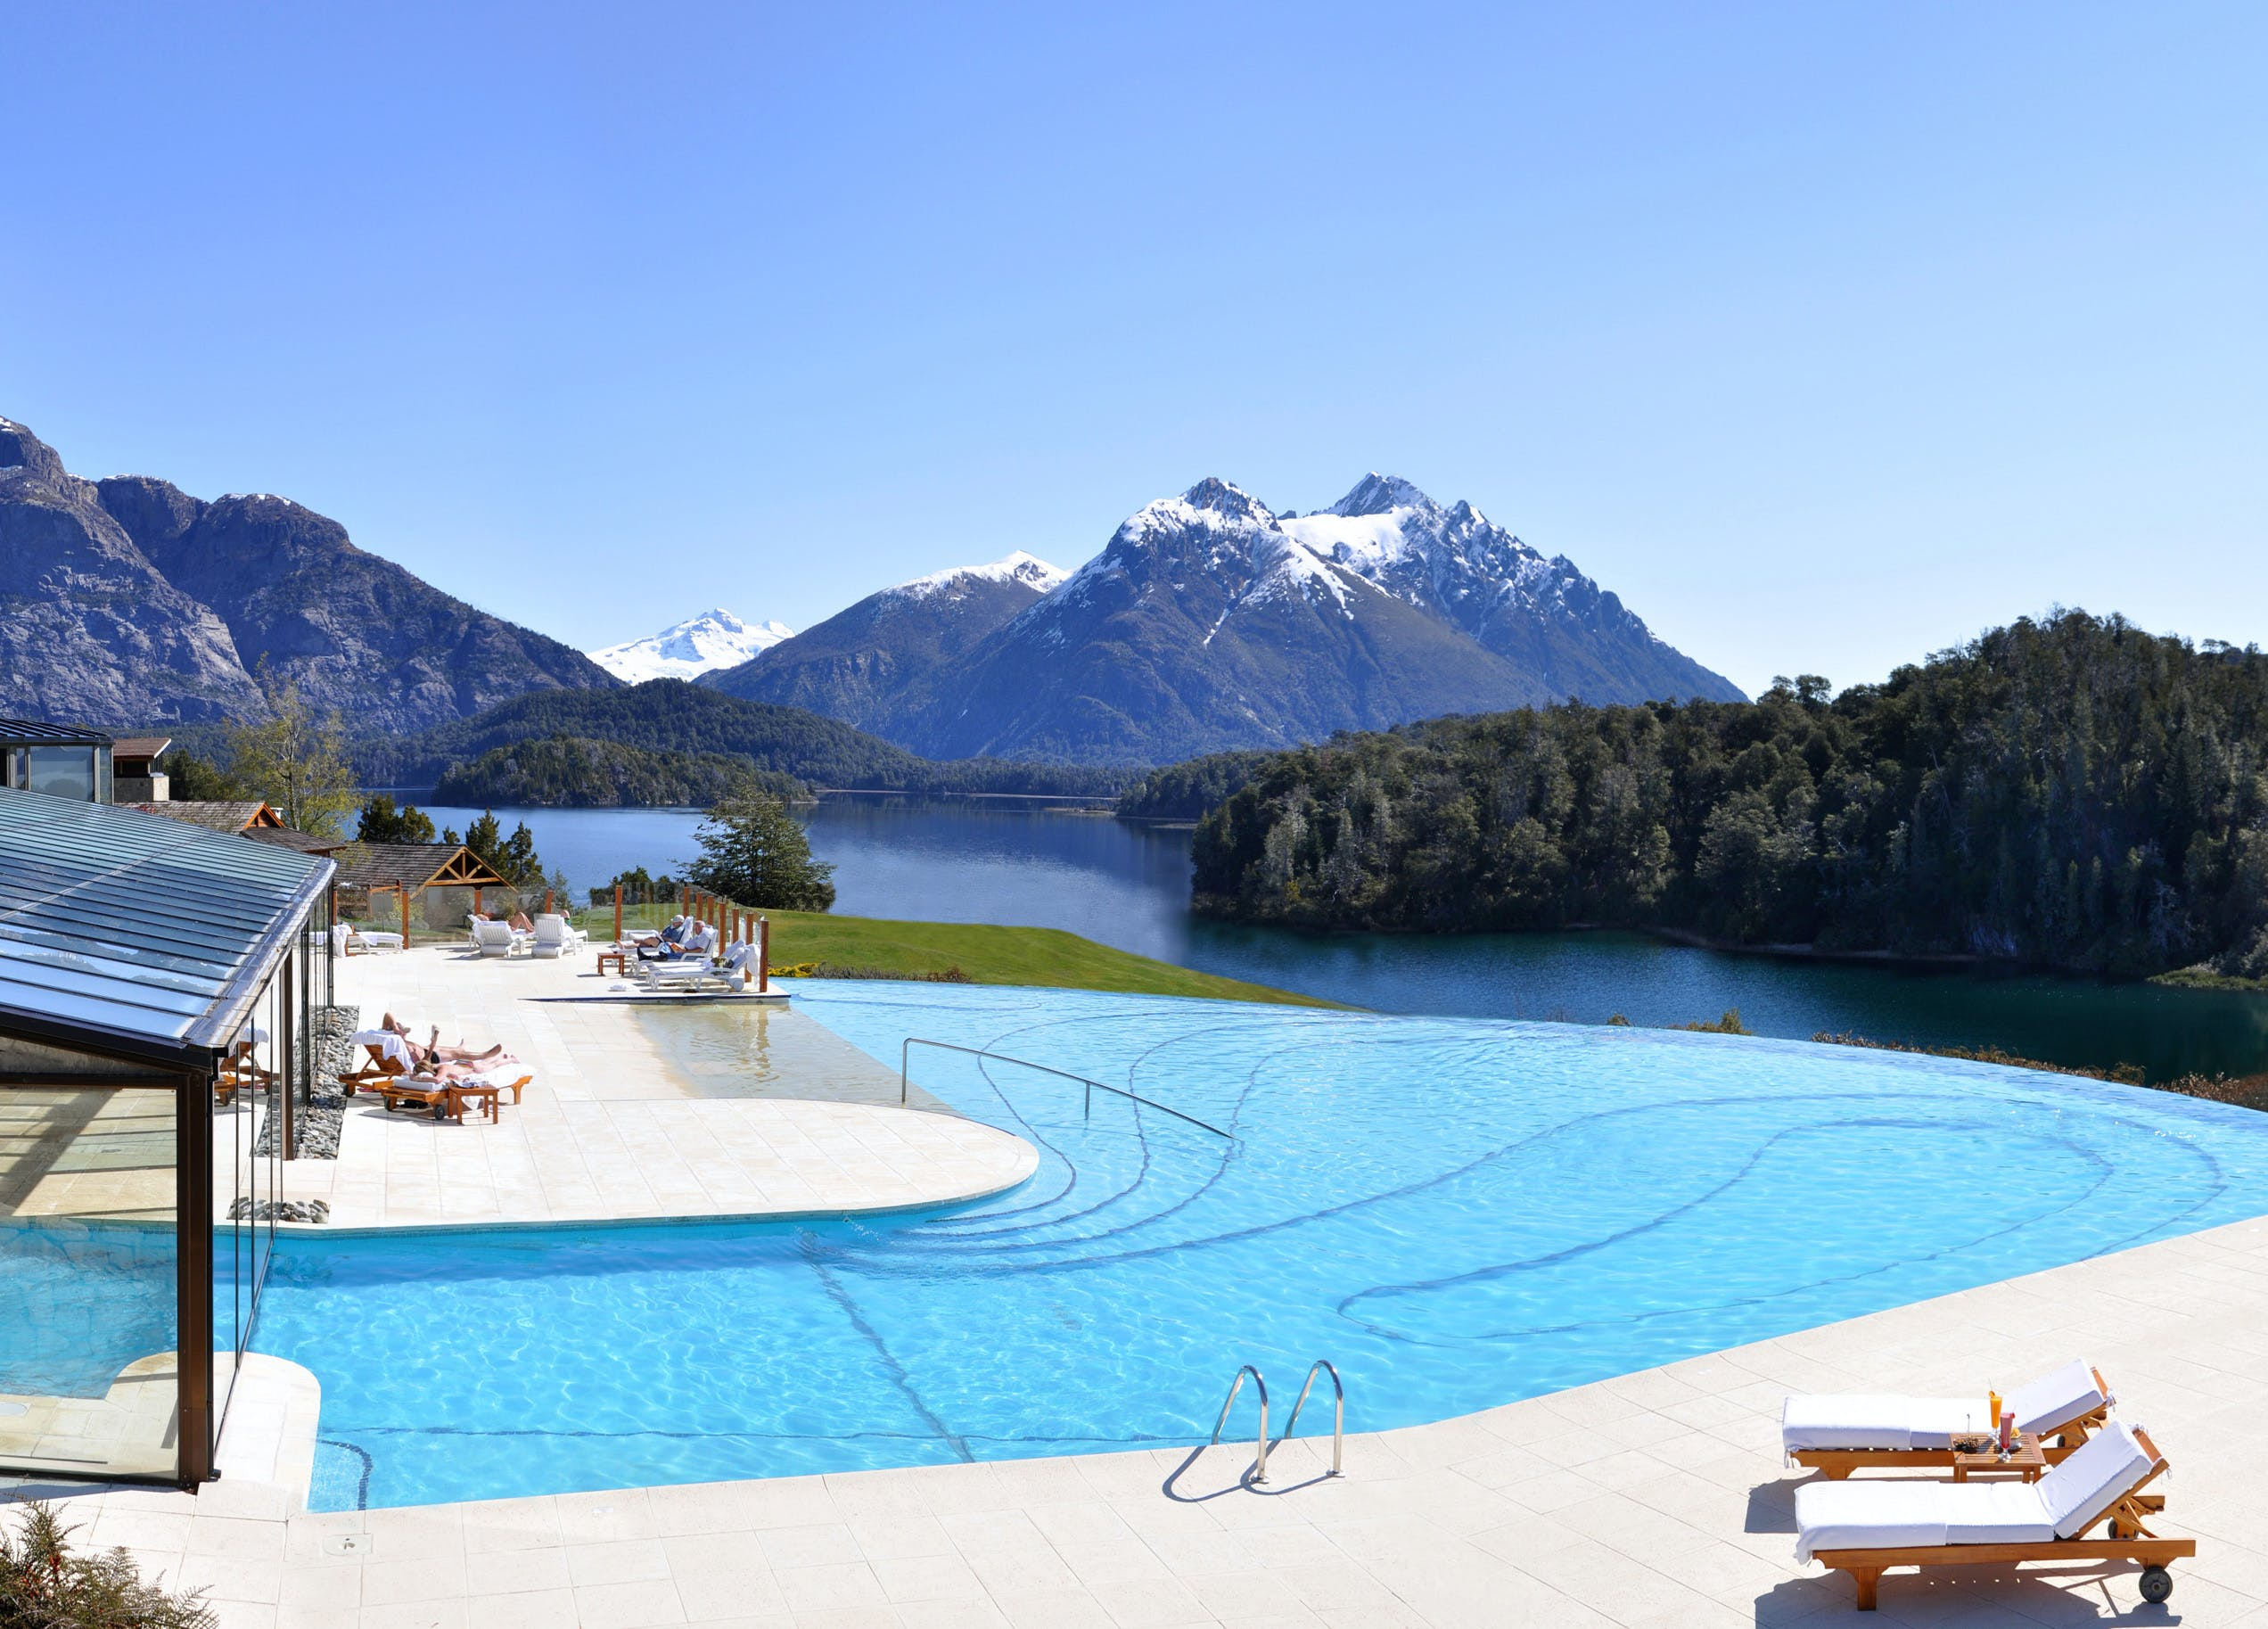 Llao Llao Resort